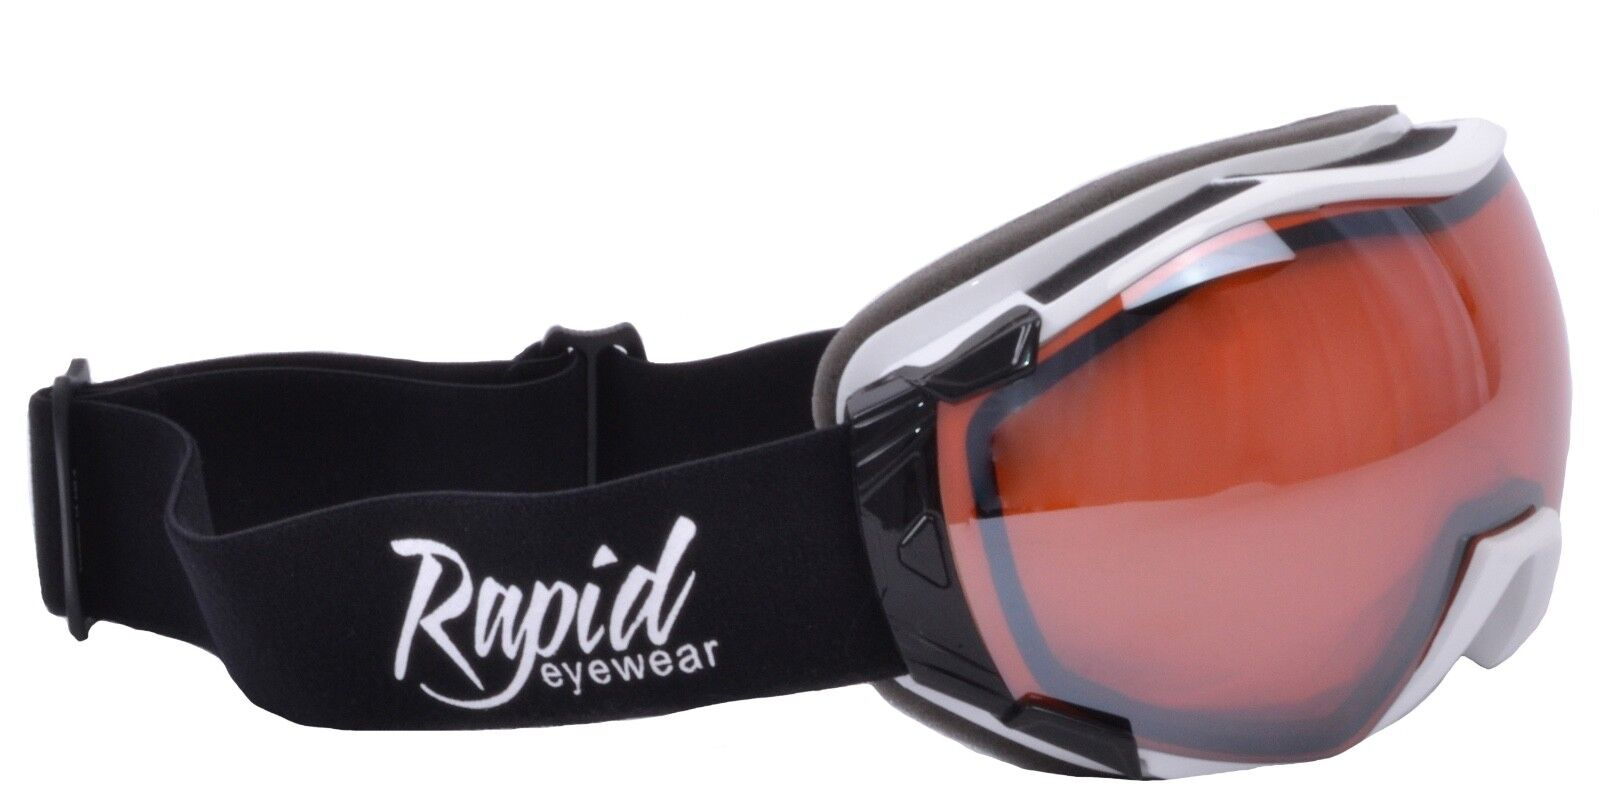 e90249e8e8e Details about SKI GOGGLES OVER GLASSES For Men   Women That Fit Over  Prescription Spectacles